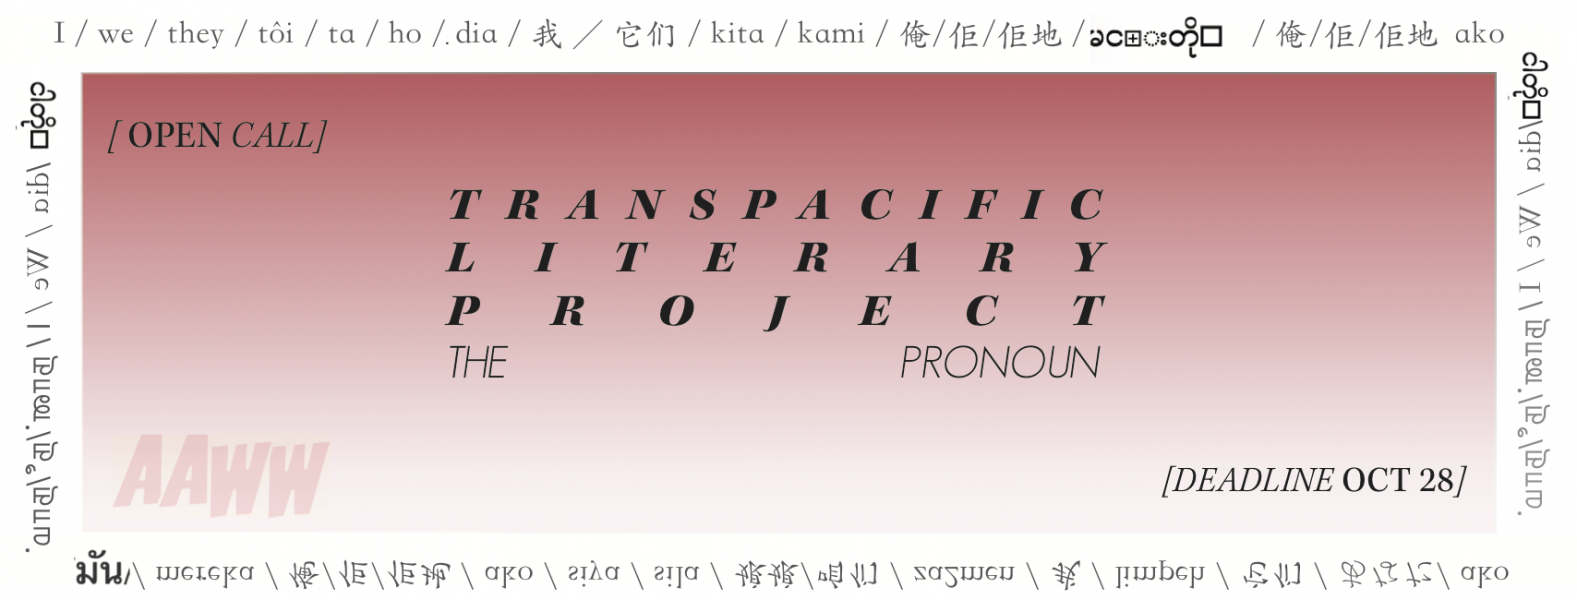 Asian American Writers' Workshop - Transpacific Literary Project